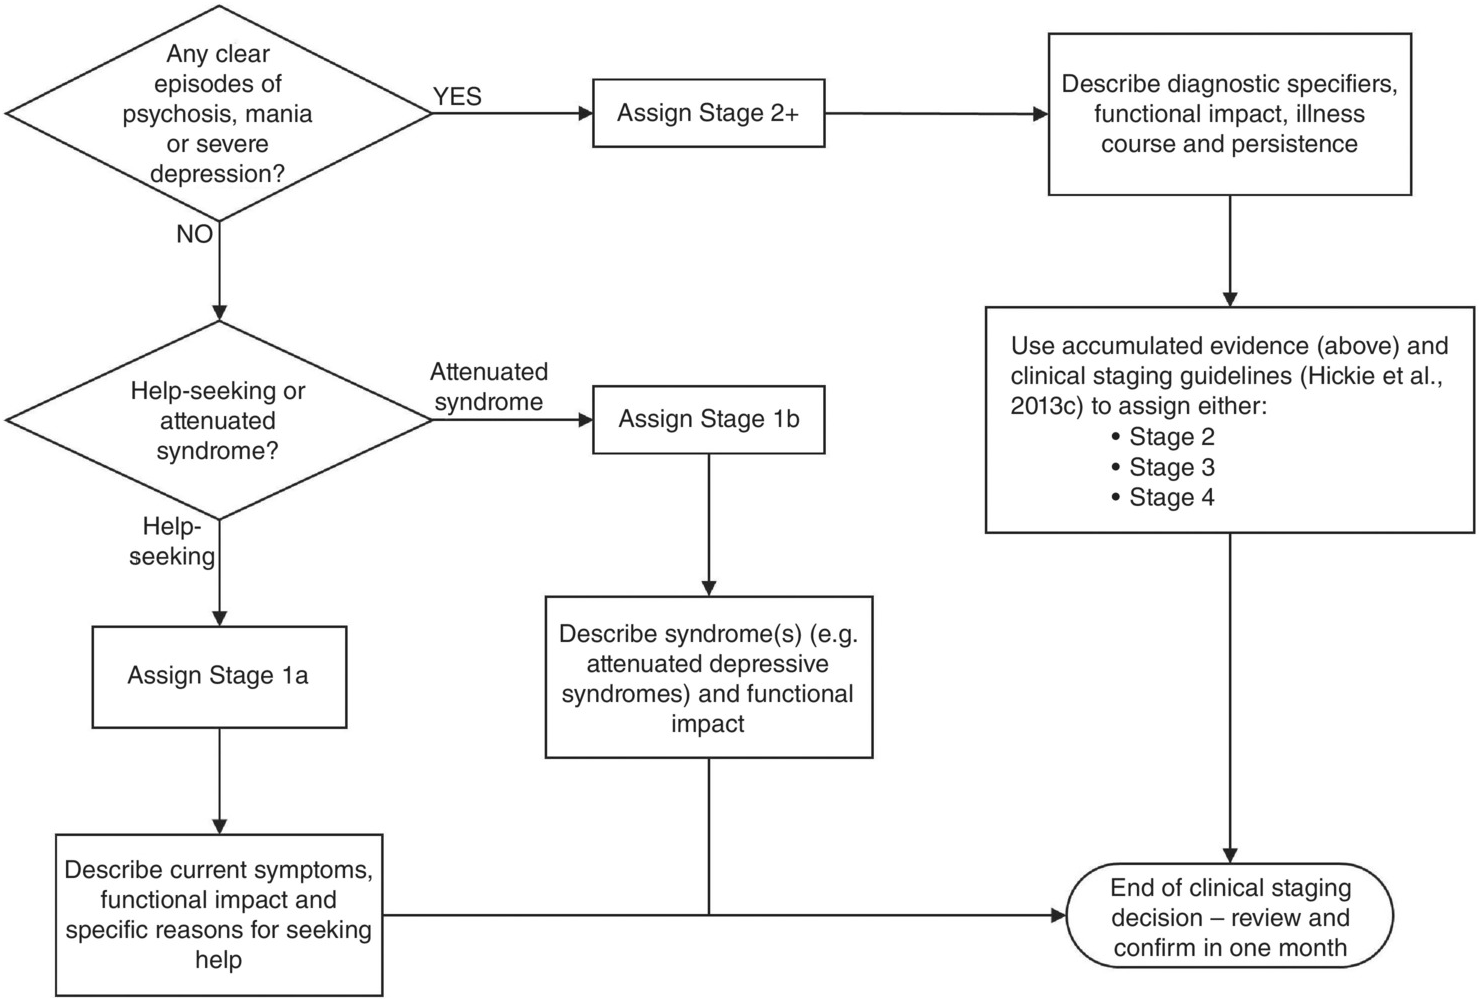 Progress with Clinical Staging (Section 2) - Clinical